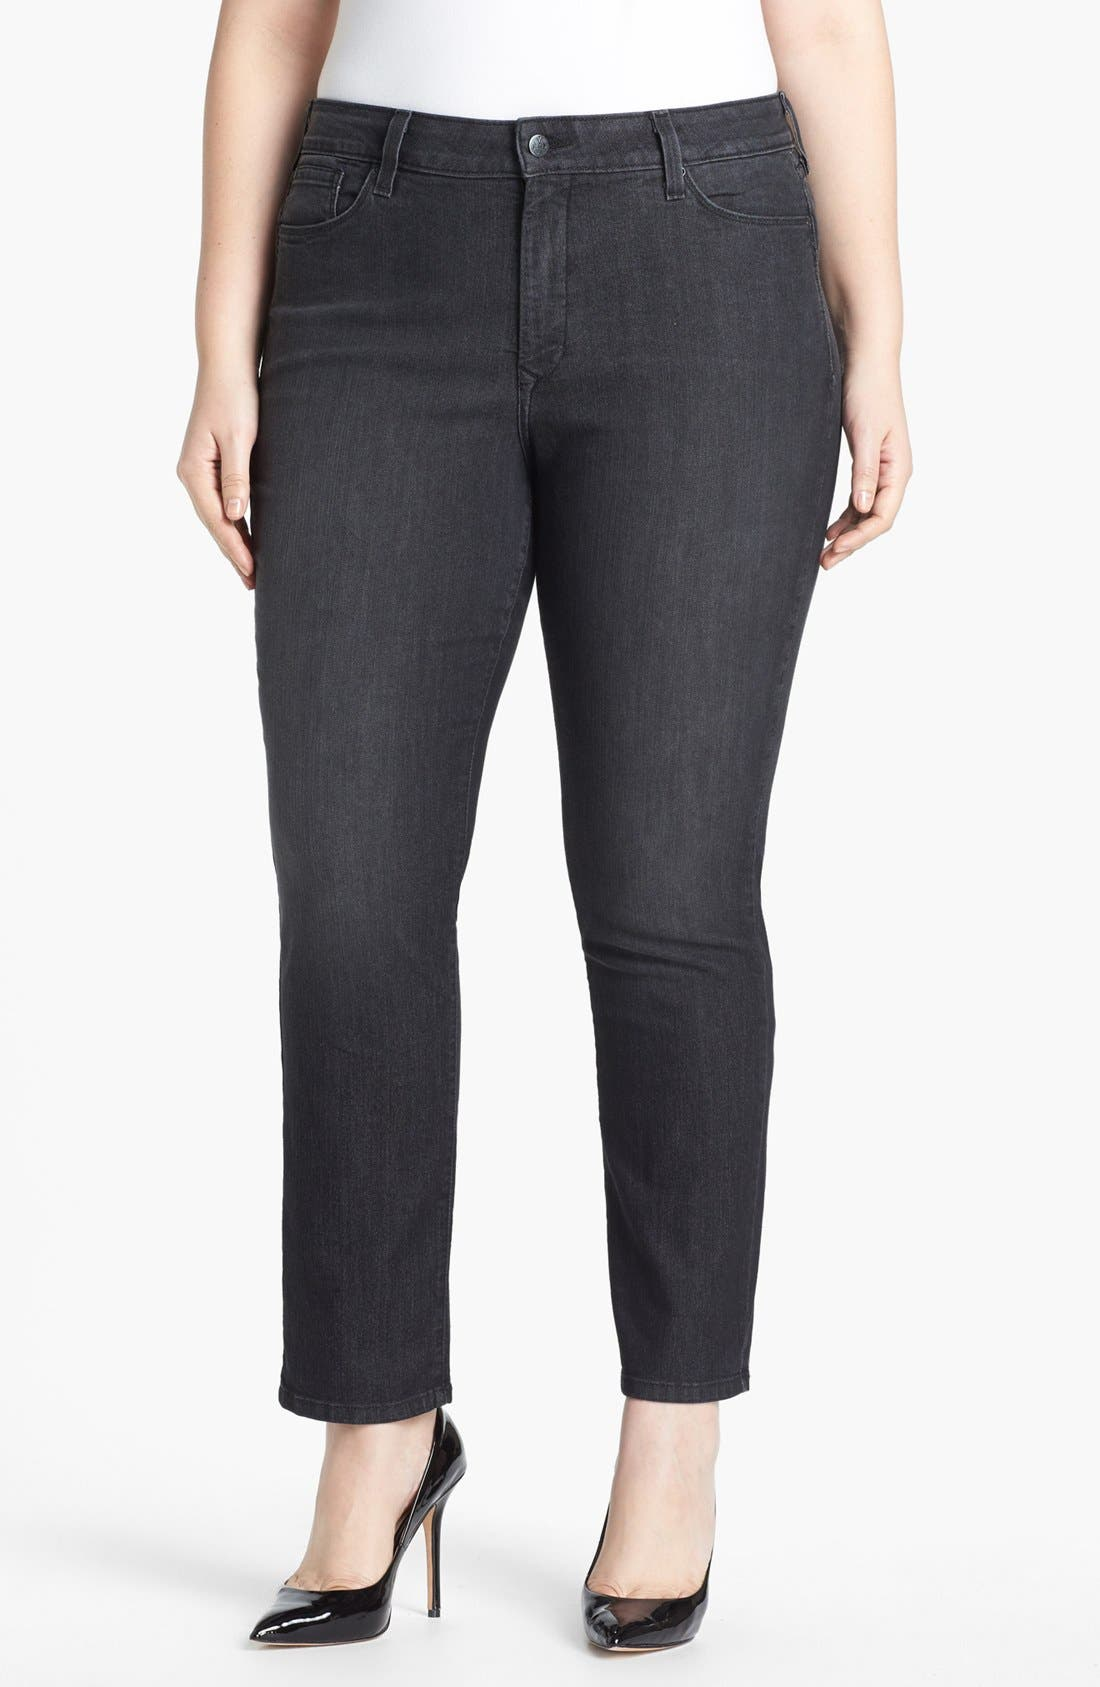 Alternate Image 1 Selected - NYDJ 'Sheri' Stretch Ankle Jeans (Onyx) (Plus Size)